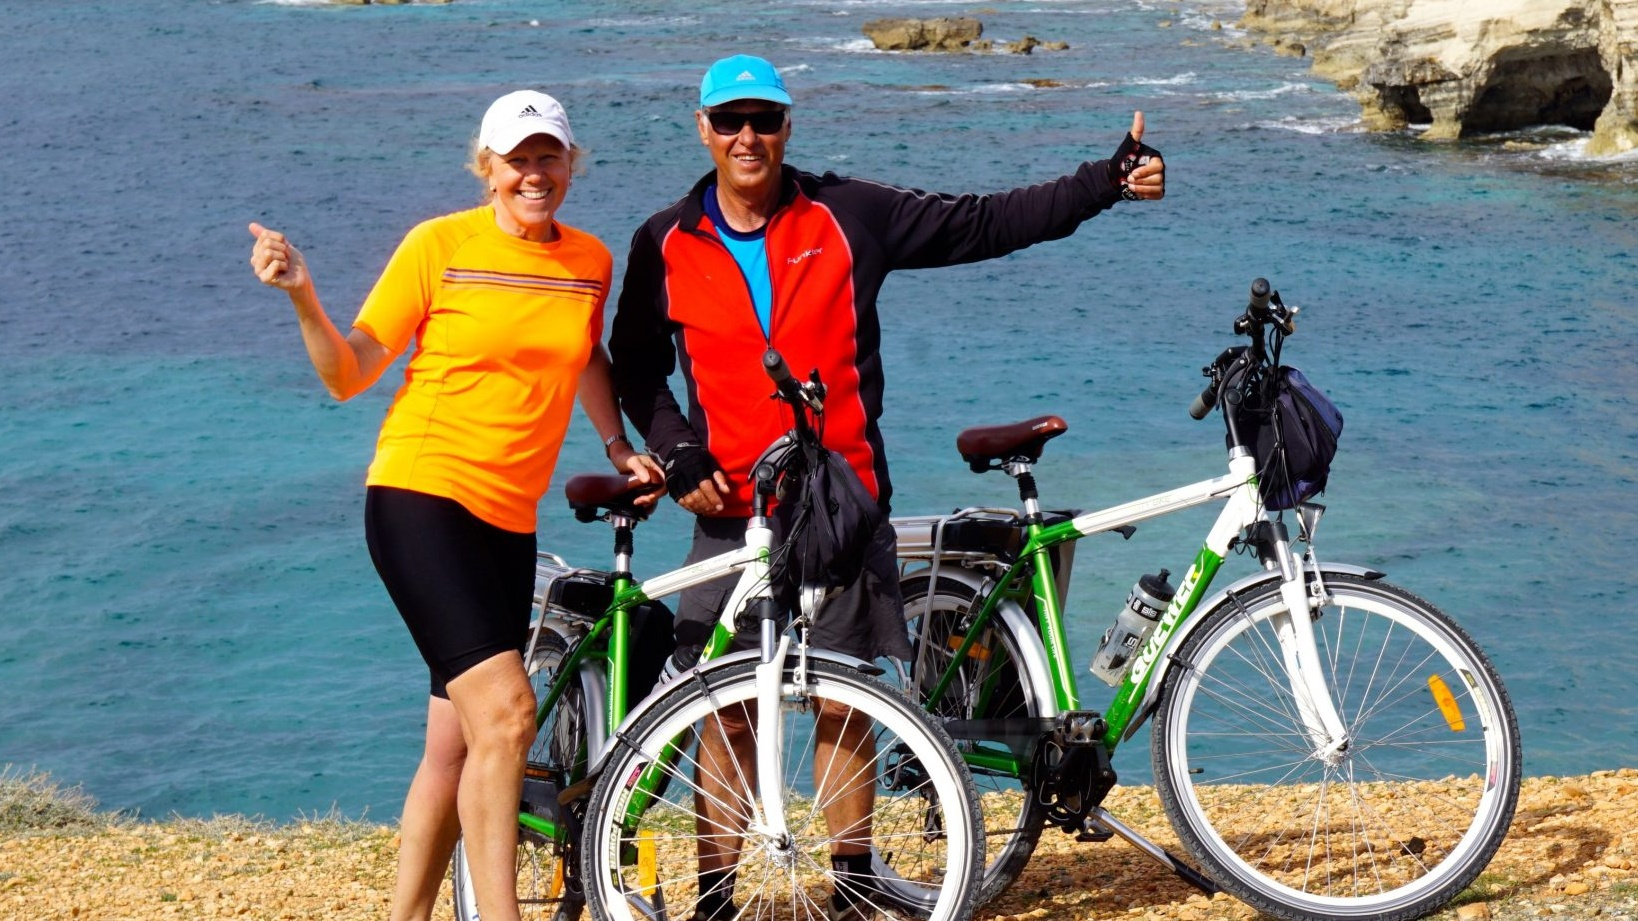 Responsible-Travel-Cyprus-Electic-Bike Cropped